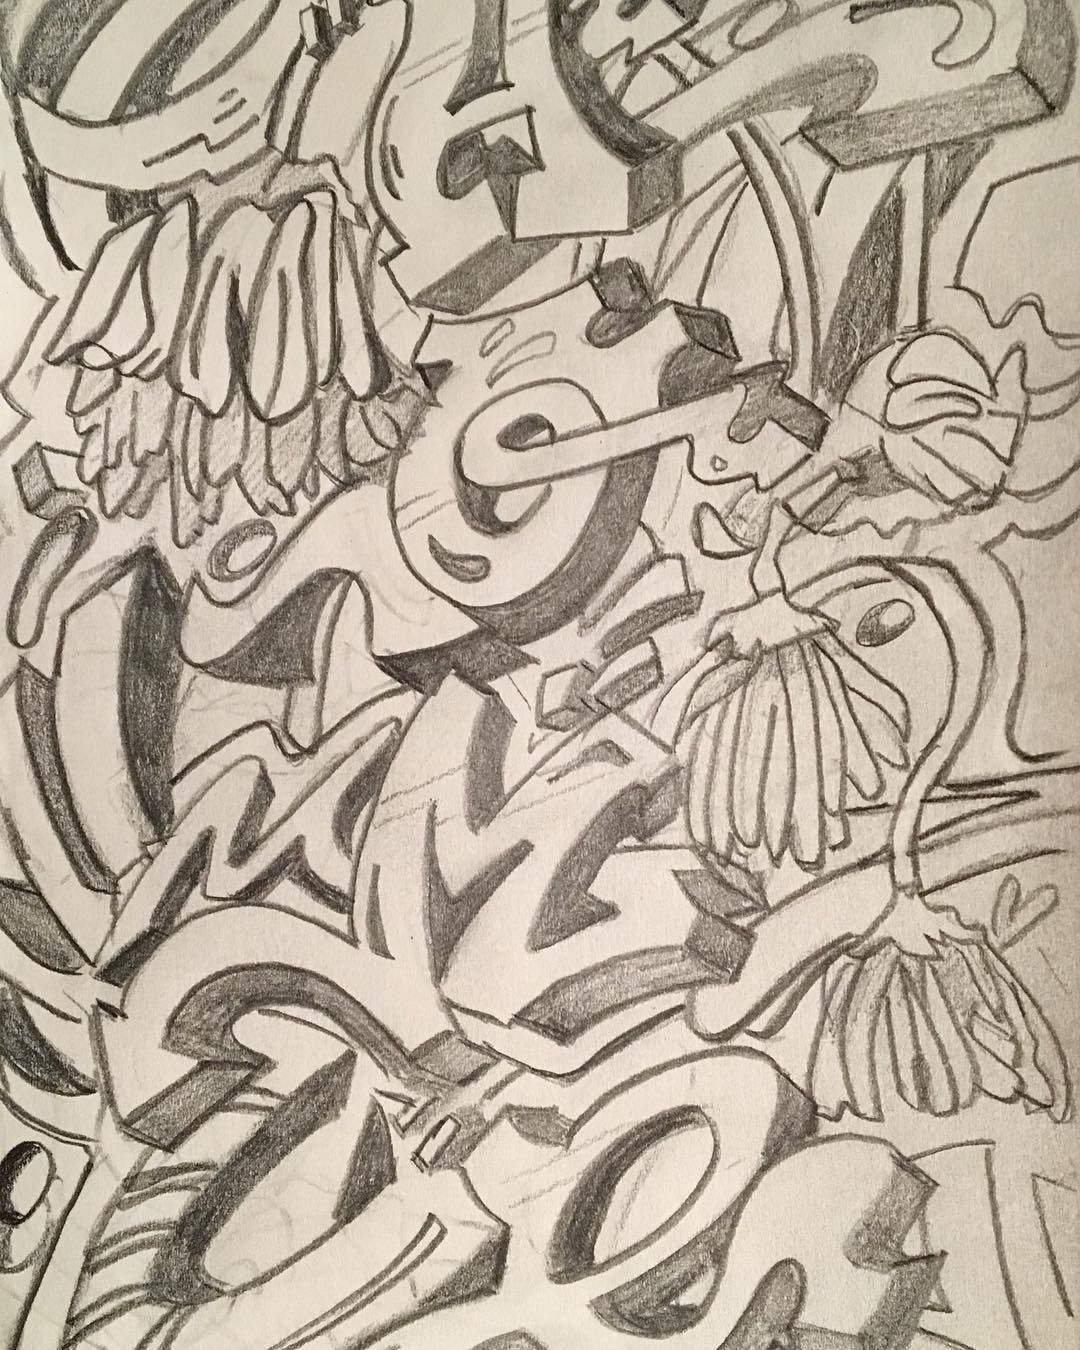 Sketch for my first graffiti attempt. Prepping the surface today.  Great to be thinking differently.